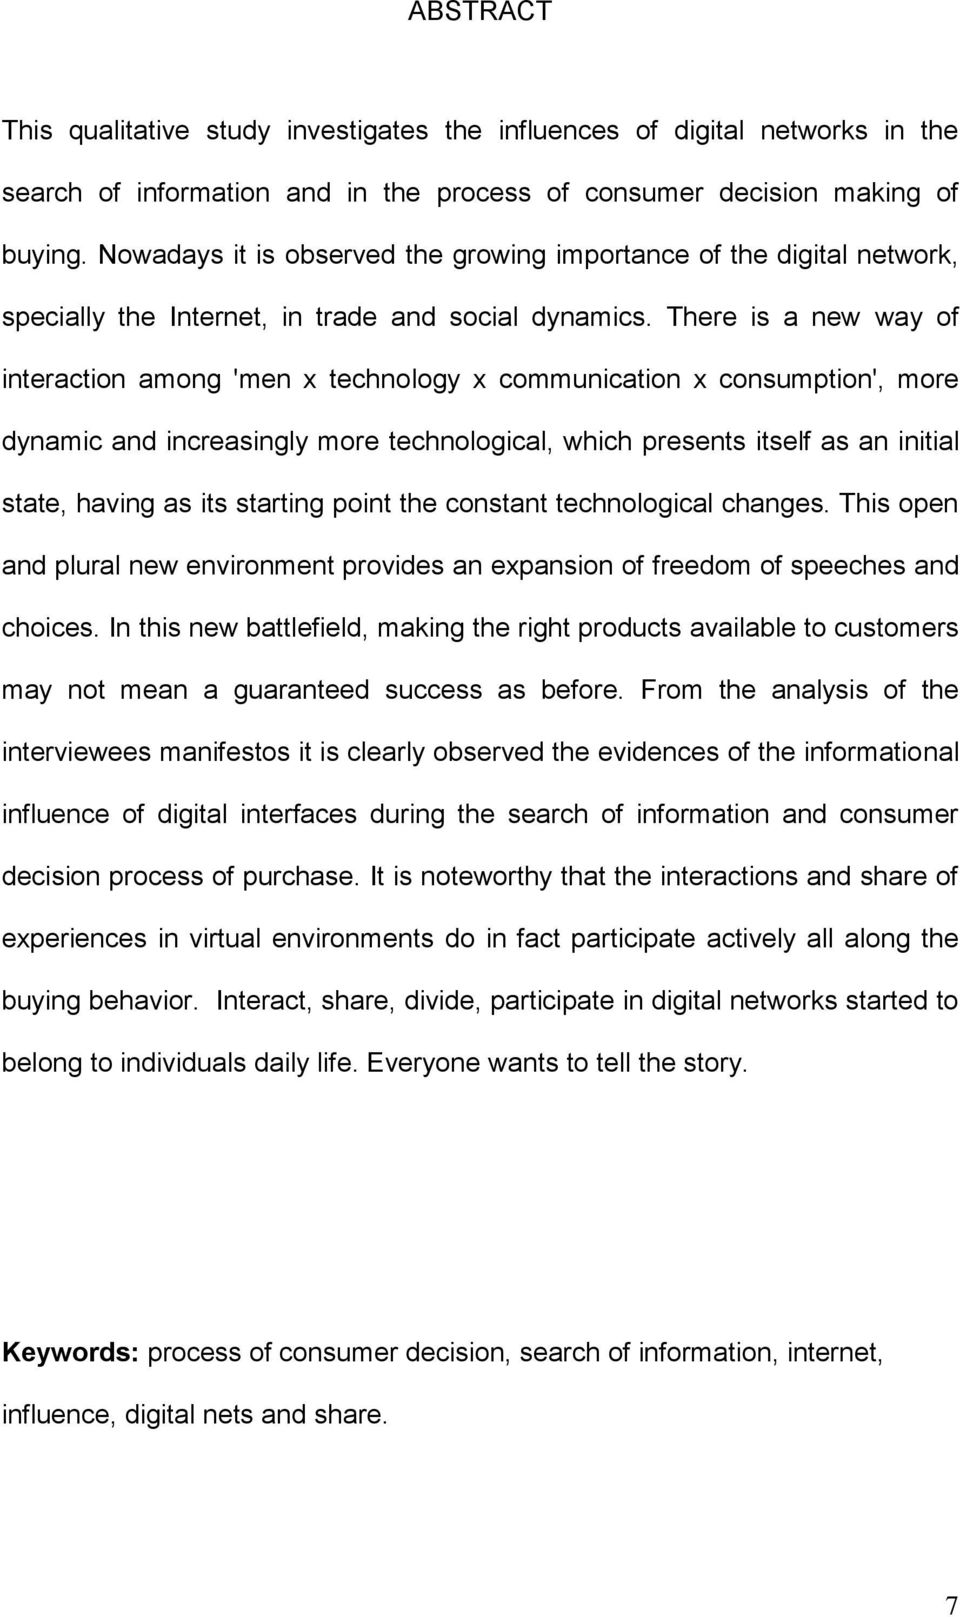 There is a new way of interaction among 'men x technology x communication x consumption', more dynamic and increasingly more technological, which presents itself as an initial state, having as its